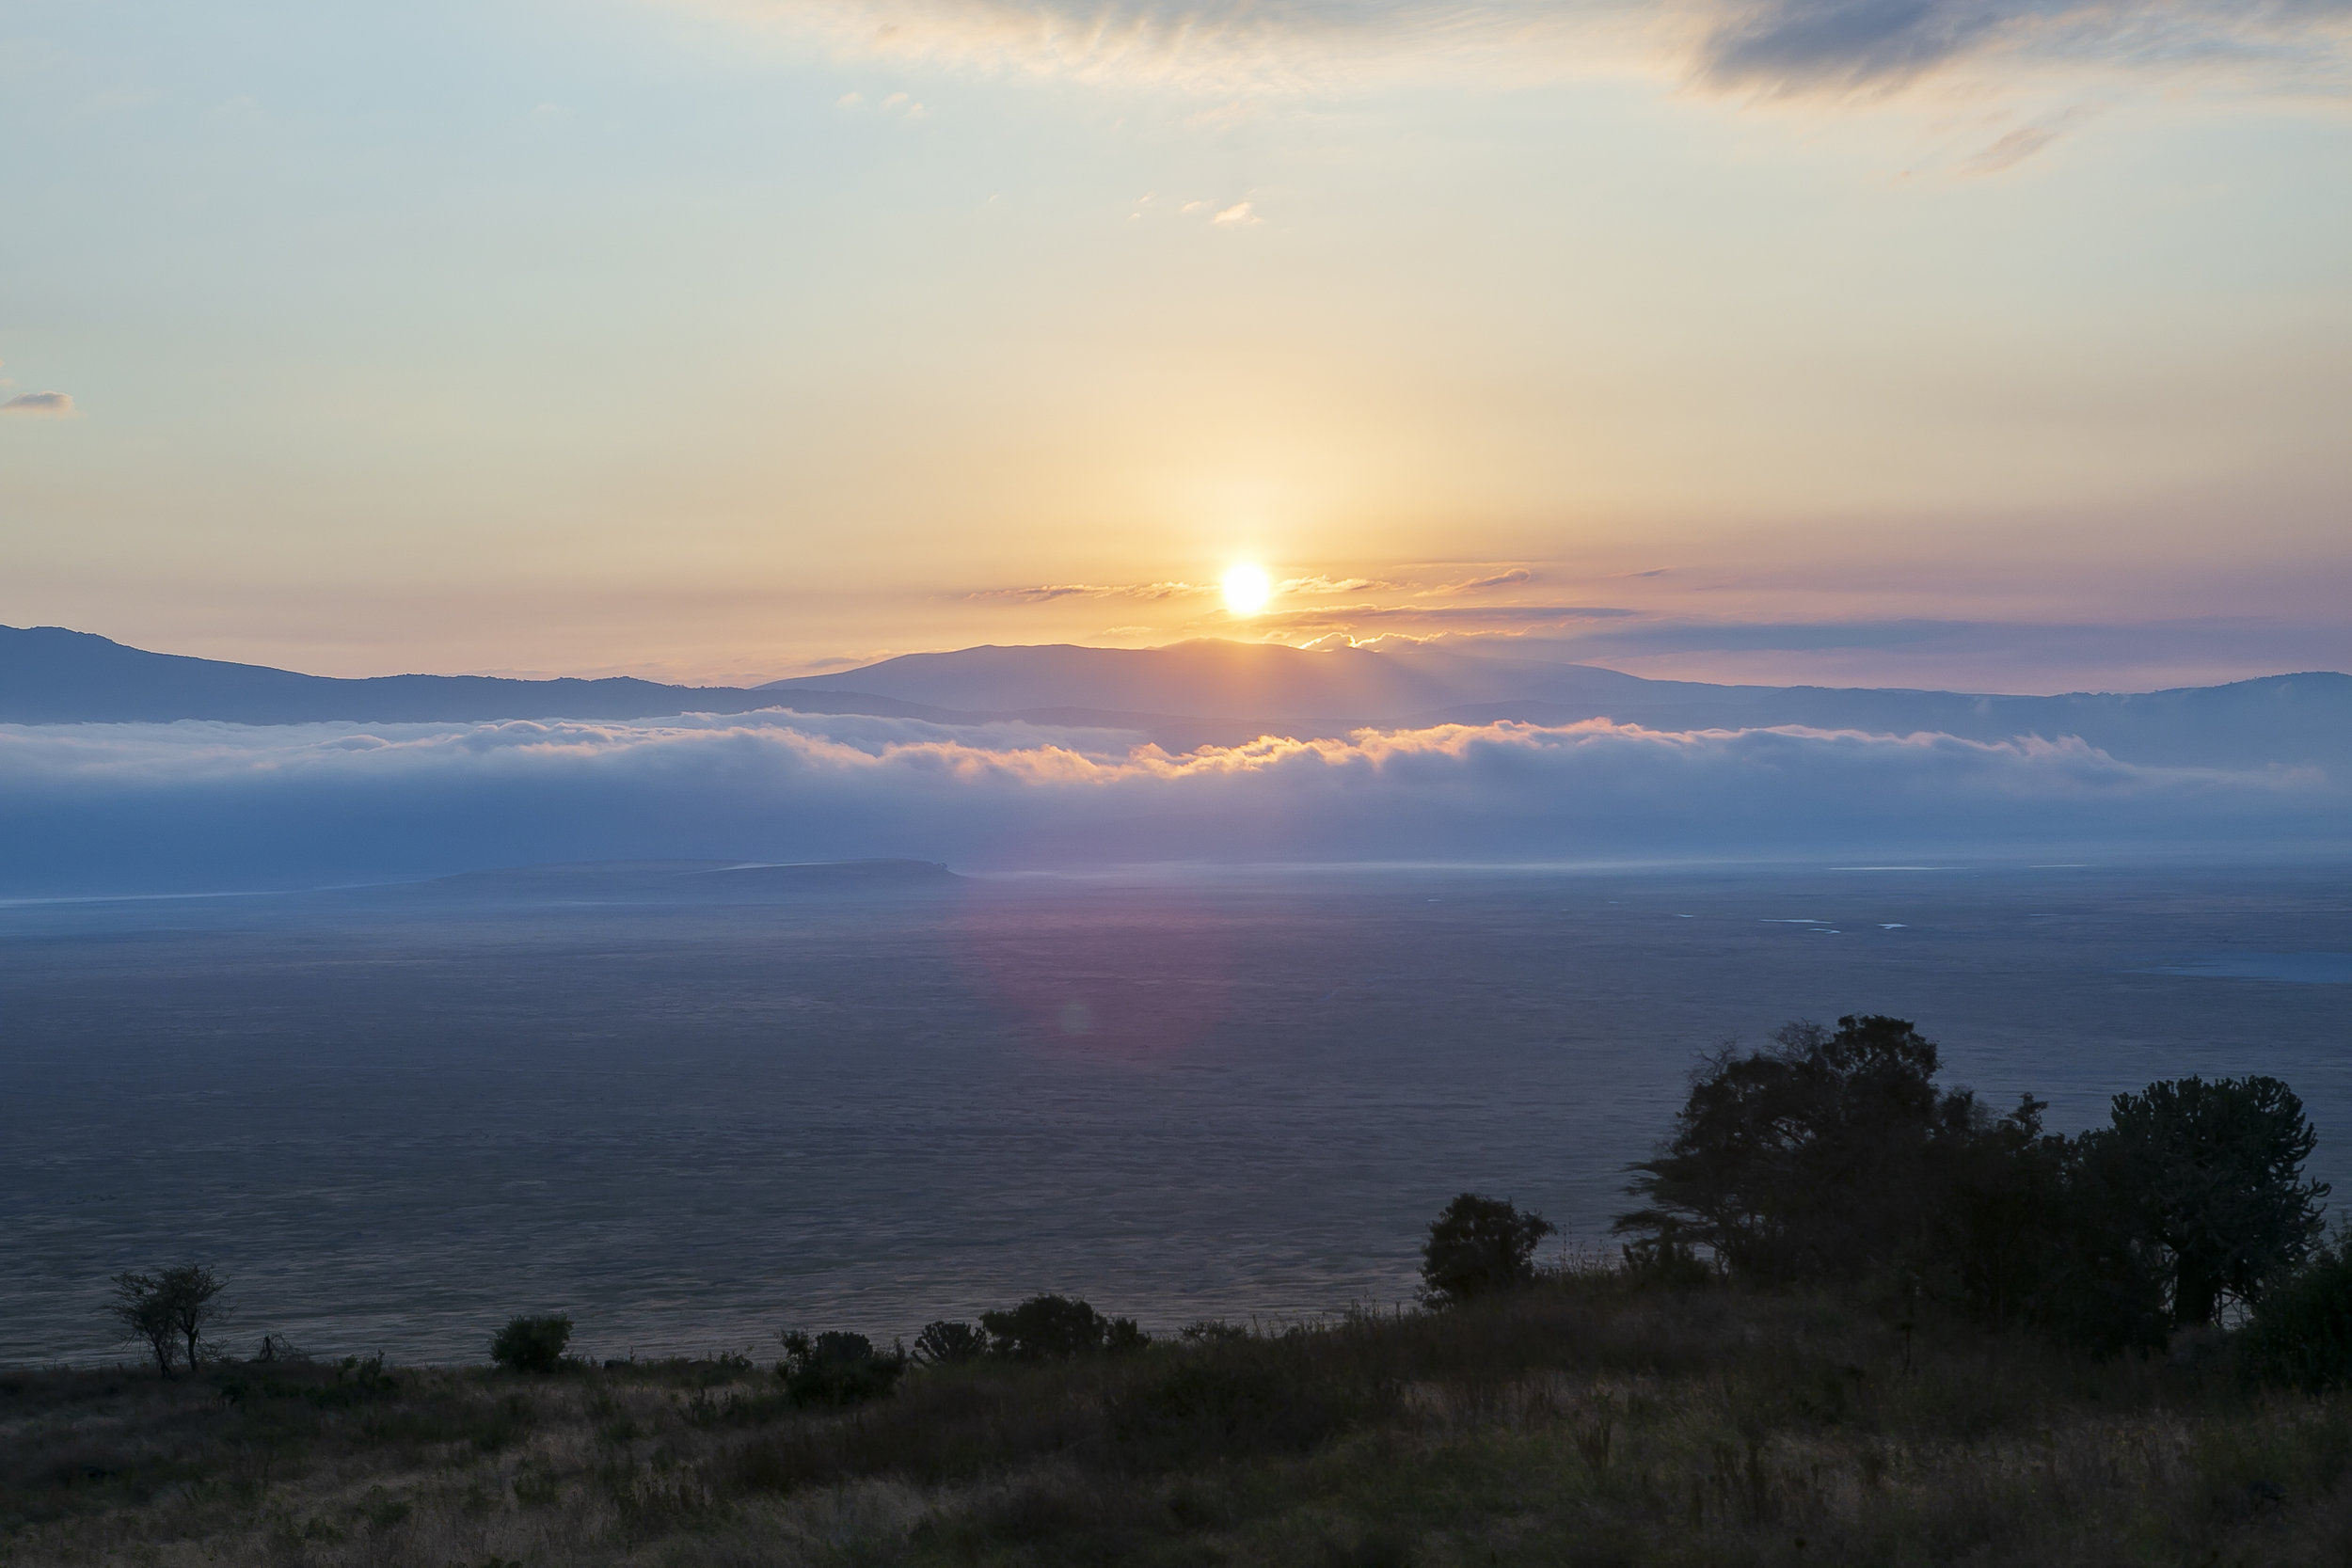 African Adventure - 31 July '18 - Ngorongoro (Crater) Conservation Area to Meserani, Tanzania - 007.JPG